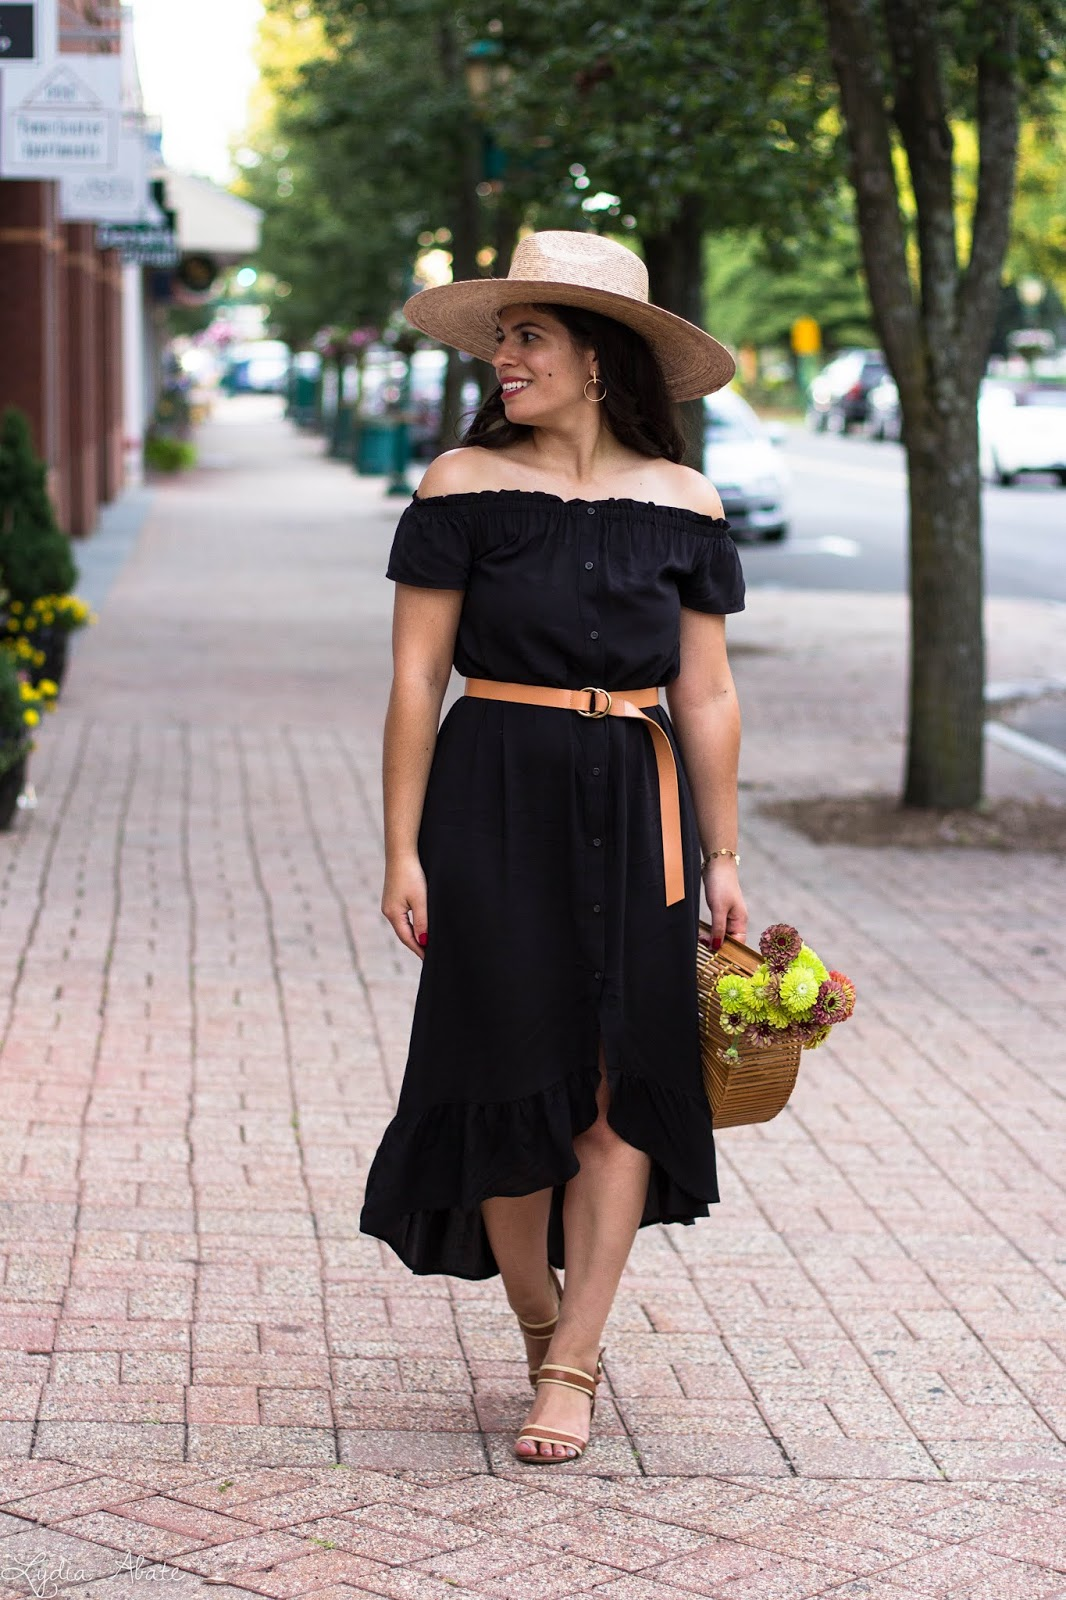 August 2018 - Chic on the Cheap | Connecticut based style